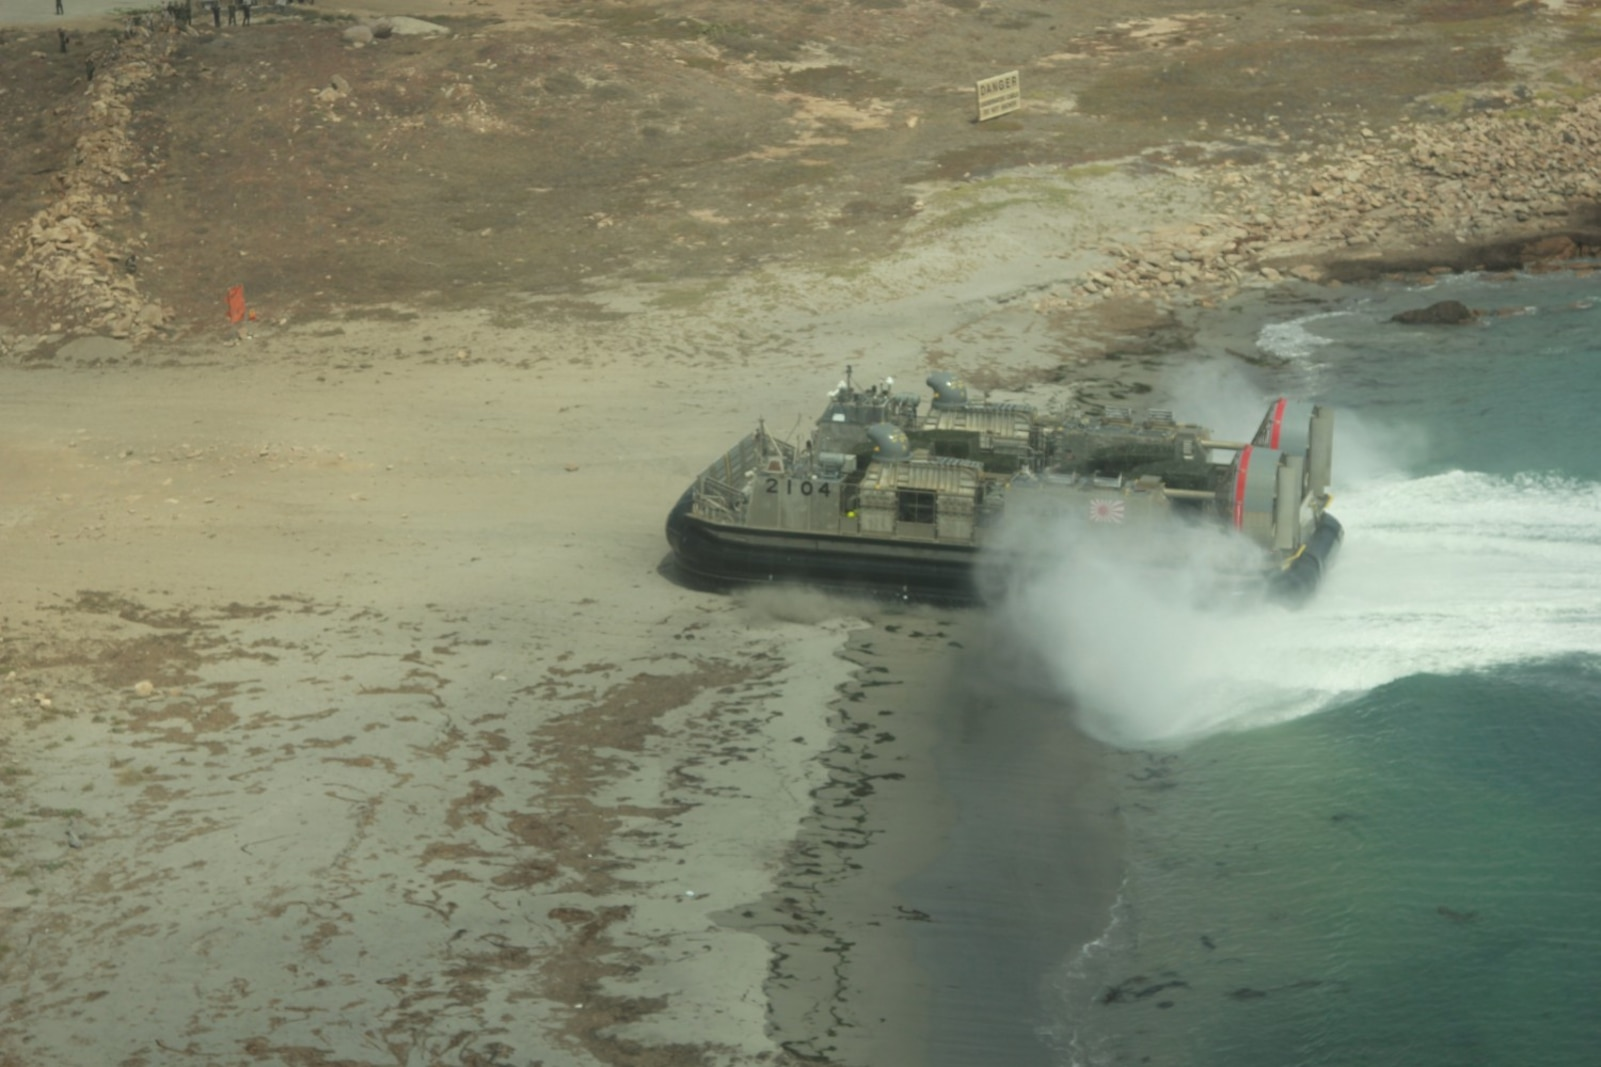 A Japanese Landing Craft Air Cushion (LCAC) conducts amphibious assault operations on the coast of San Clemente Island June 17, 2013.